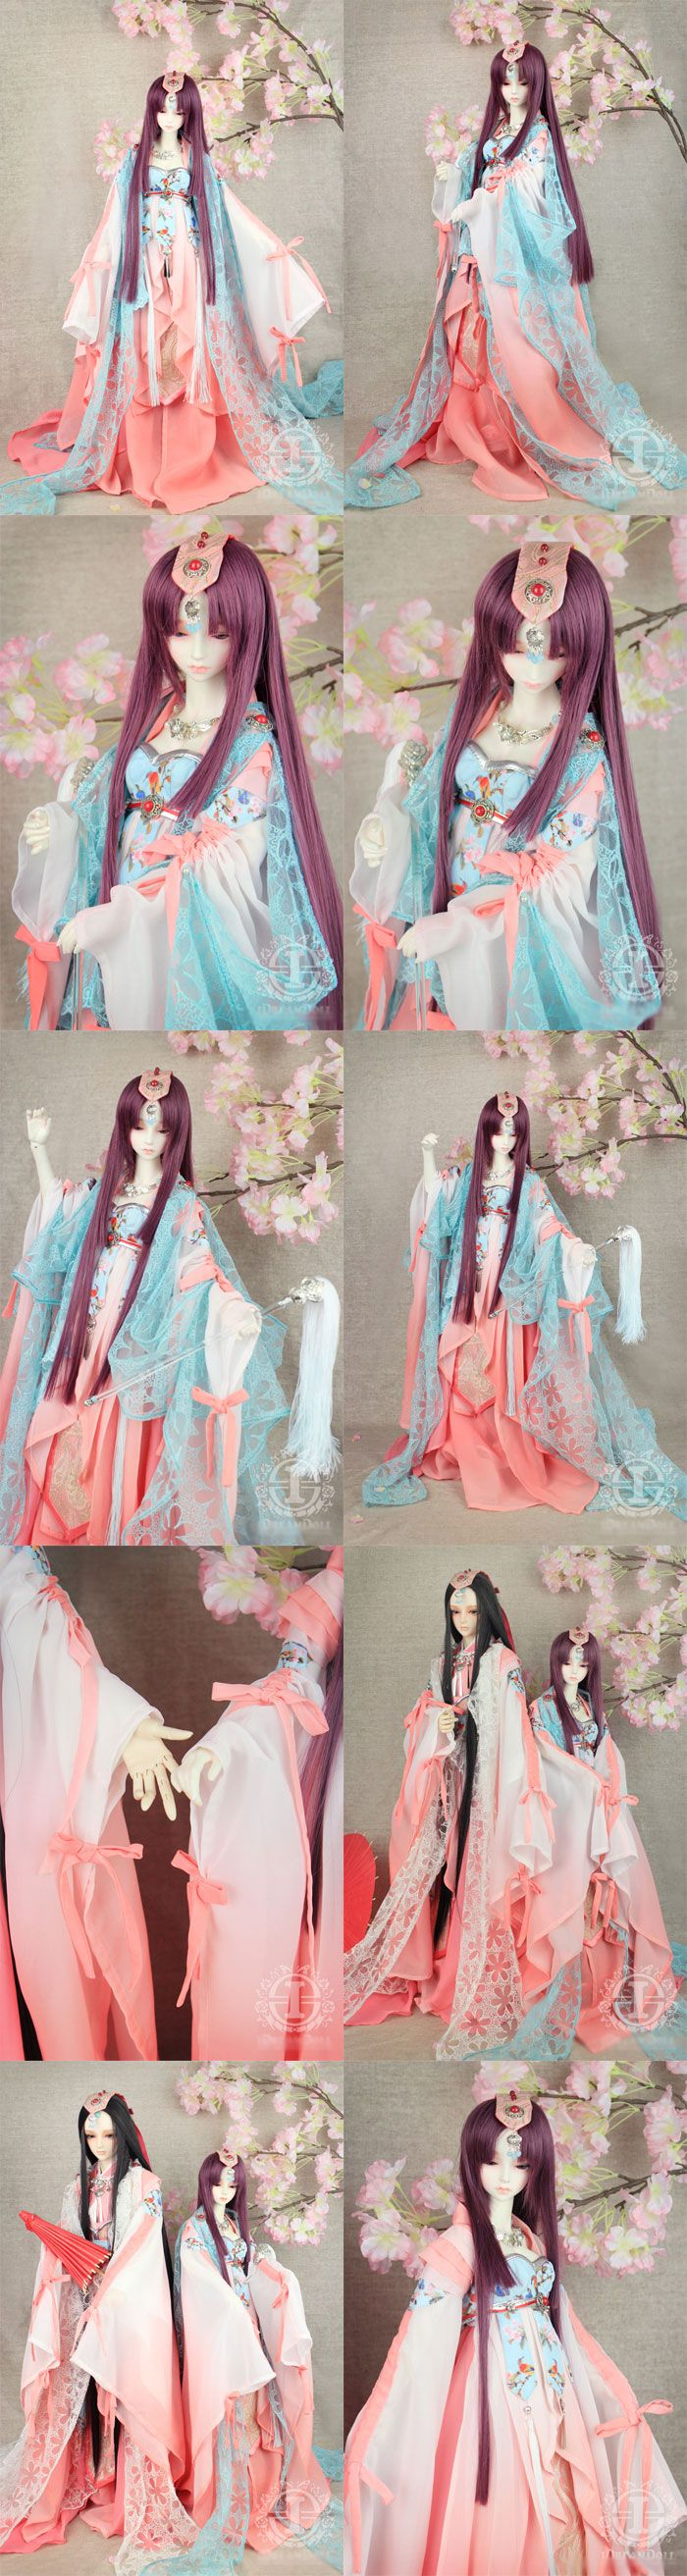 BJD Clothes Girl Ancient Suit for MSD/SD/70cm Ball-jointed Doll_MSD_MSD_CLOTHING_Ball Jointed Dolls (BJD) company-Legenddoll